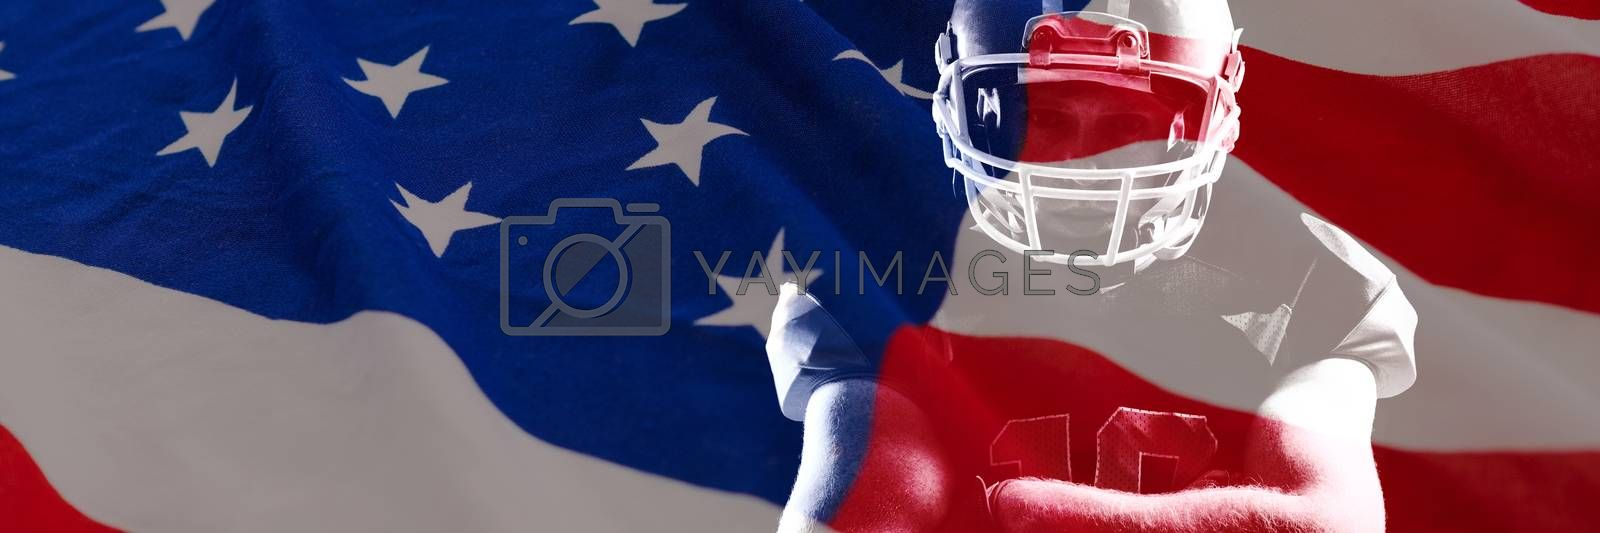 American flag with stars and stripes against american football player in helmet standing with arms crossed